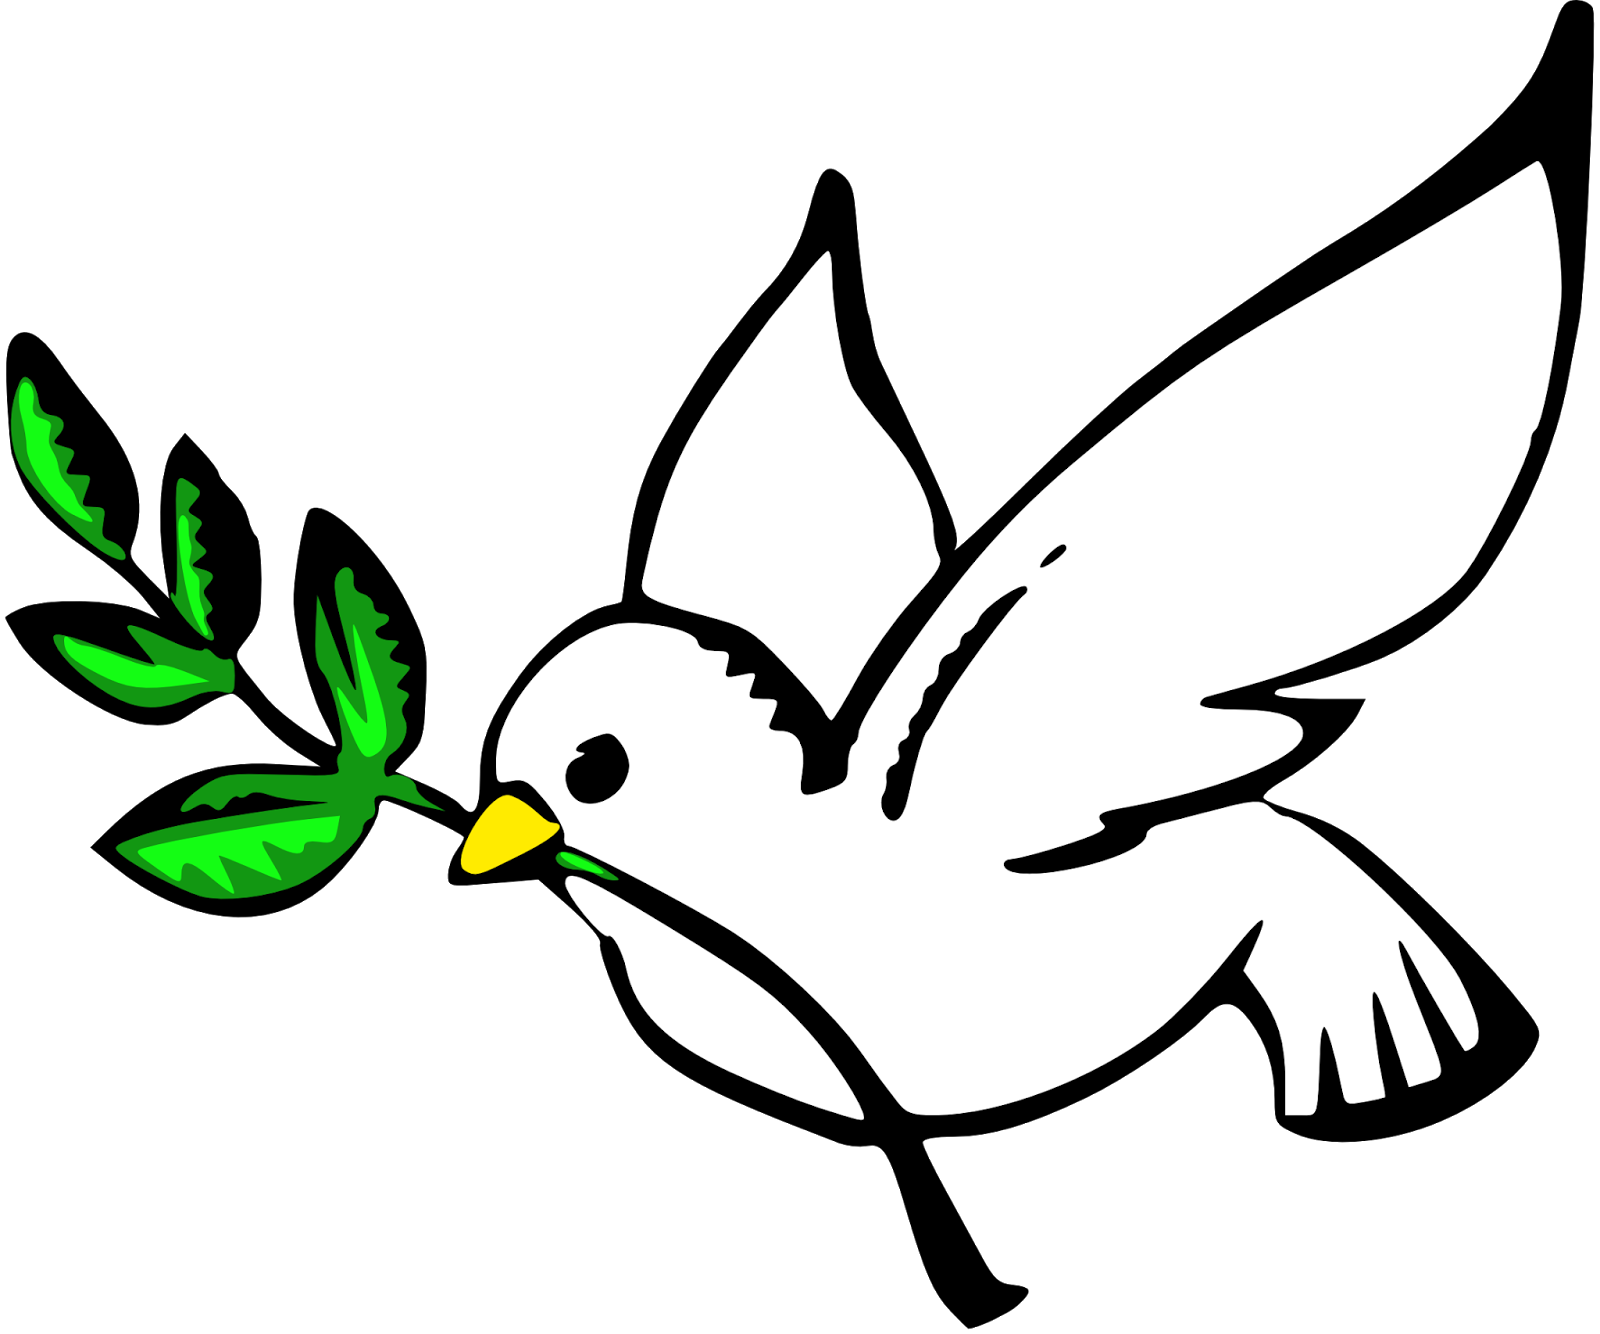 Dove and heart clipart jpg black and white Everyday Fact of life: Why doves are a symbol of peace | dove ... jpg black and white